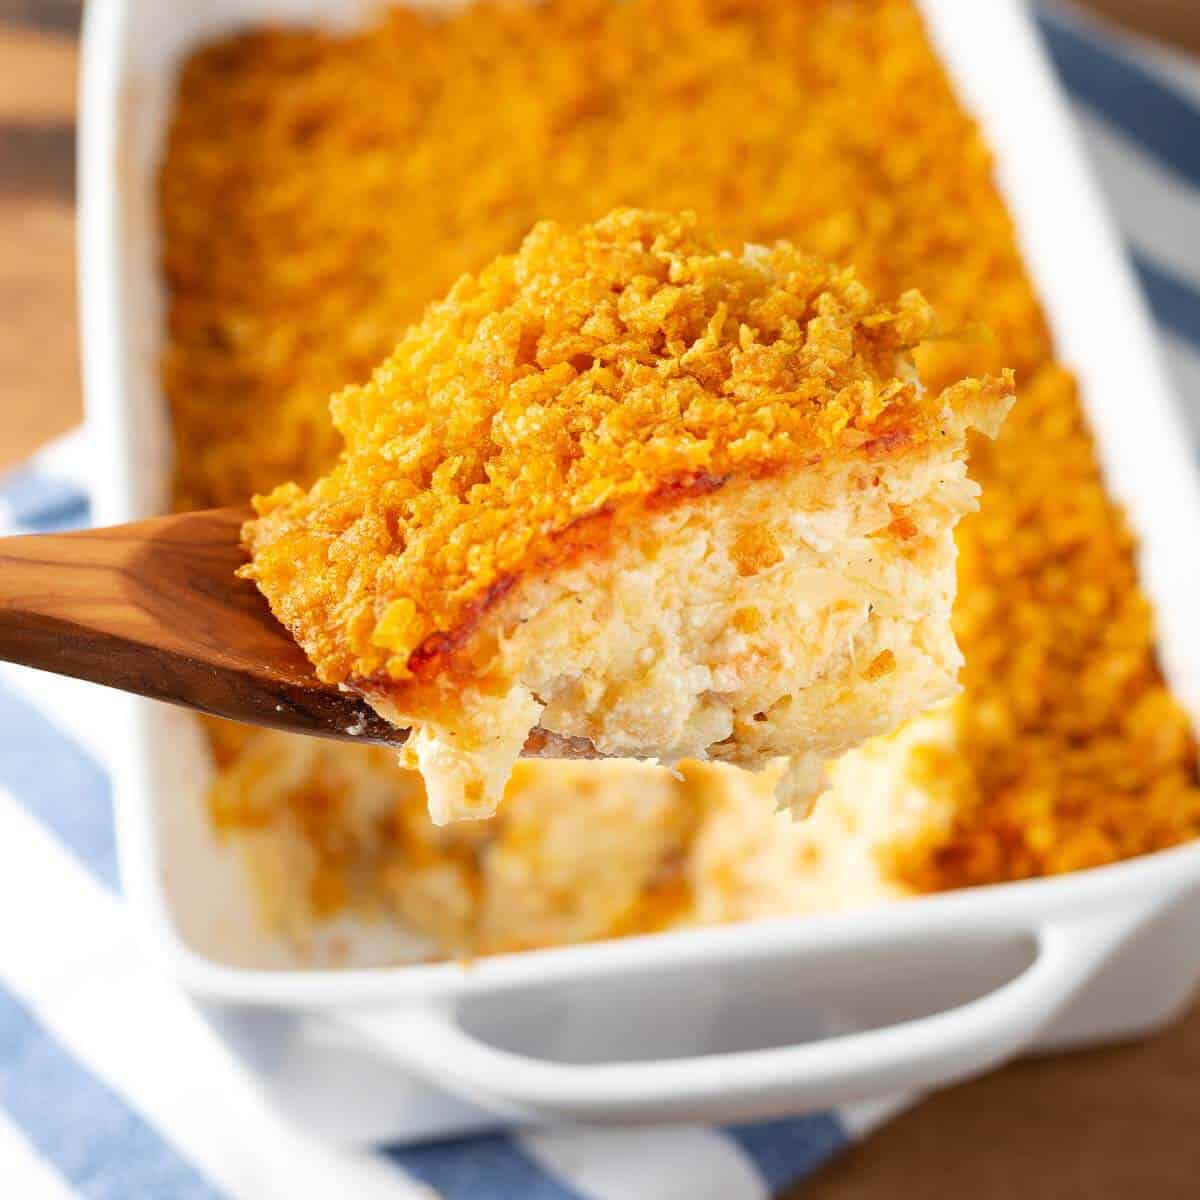 Funeral Potatoes on a wood spoon in front of baking dish